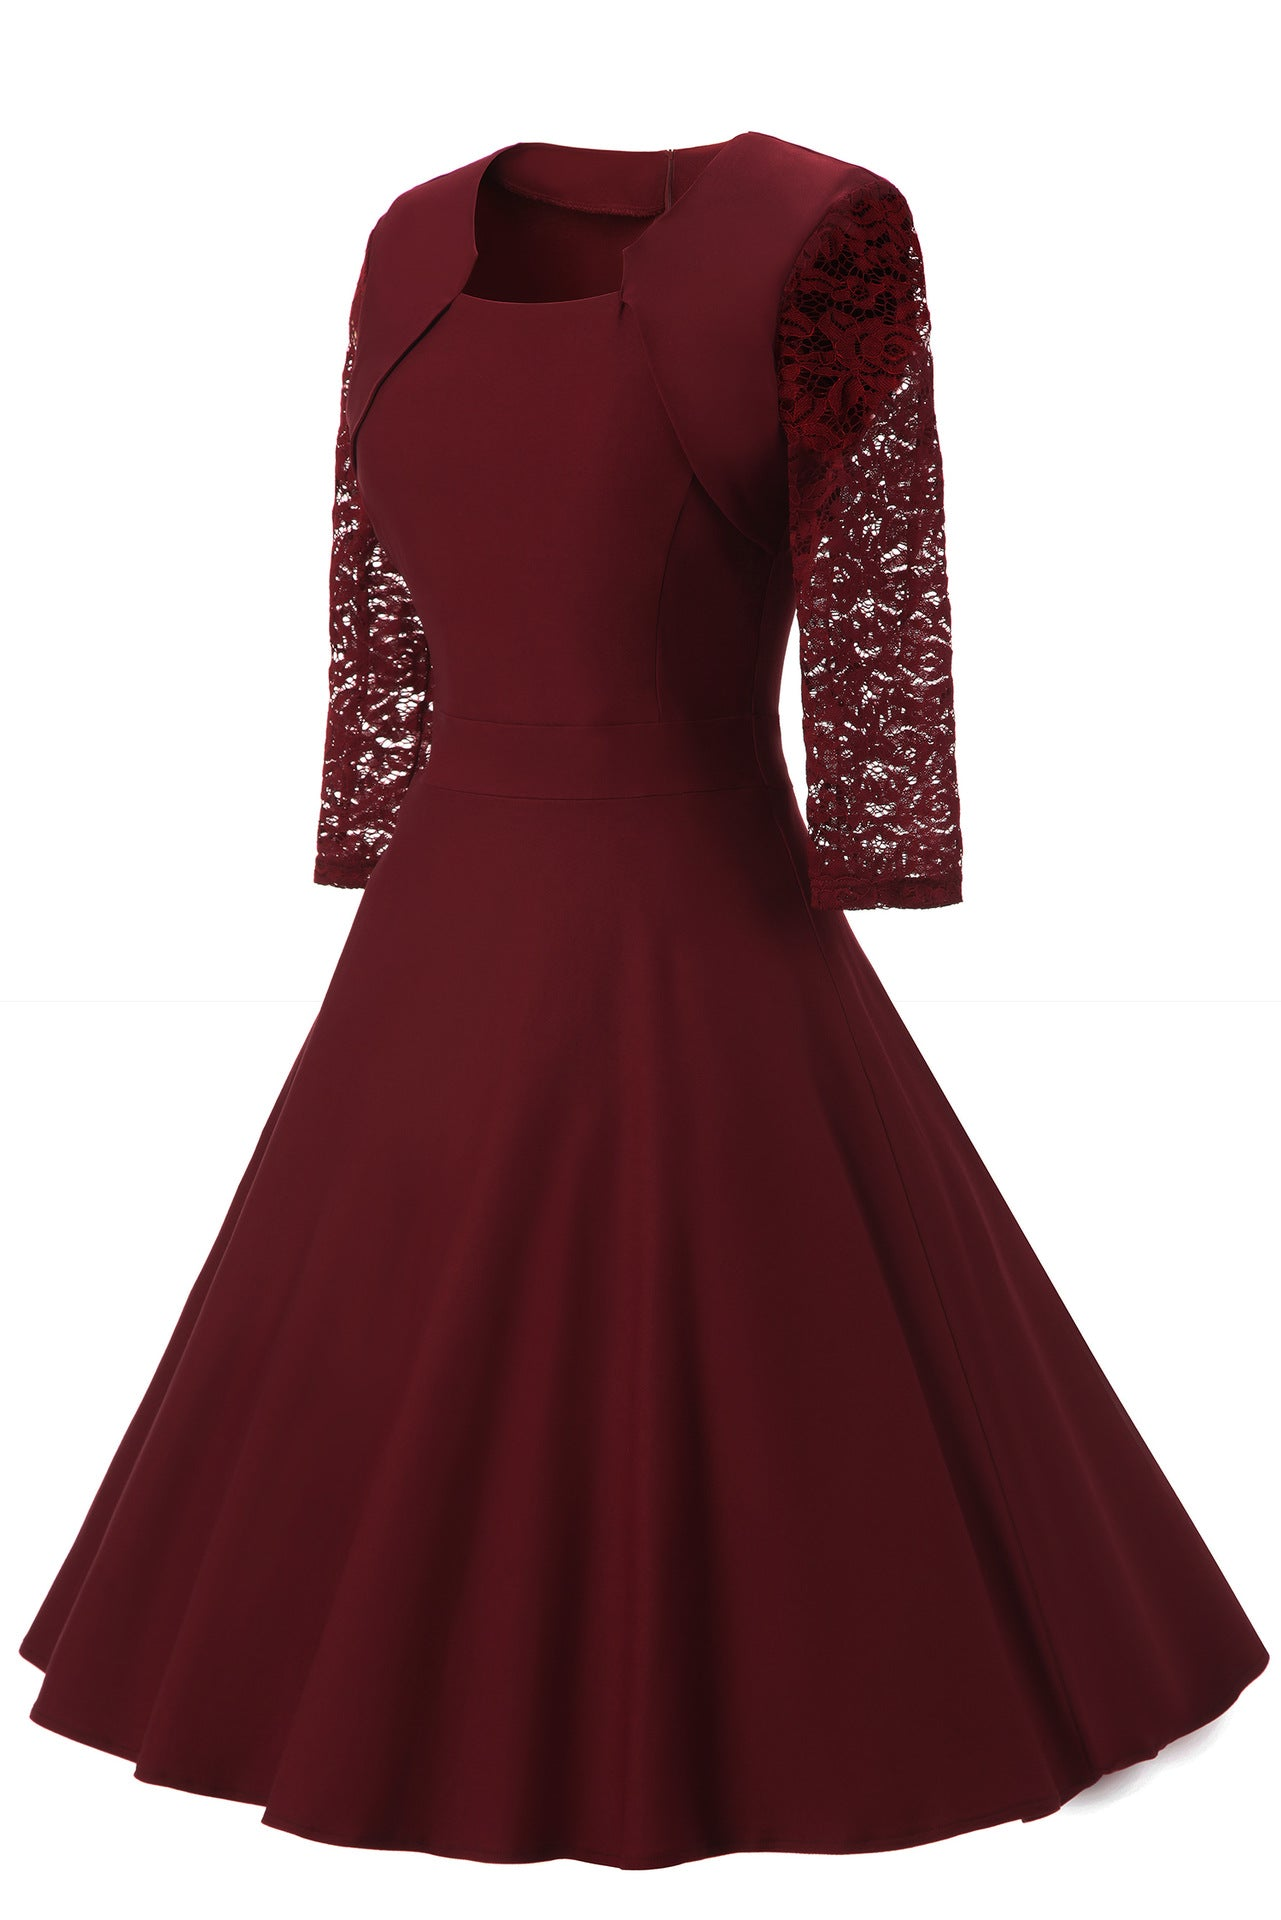 evening dress idea